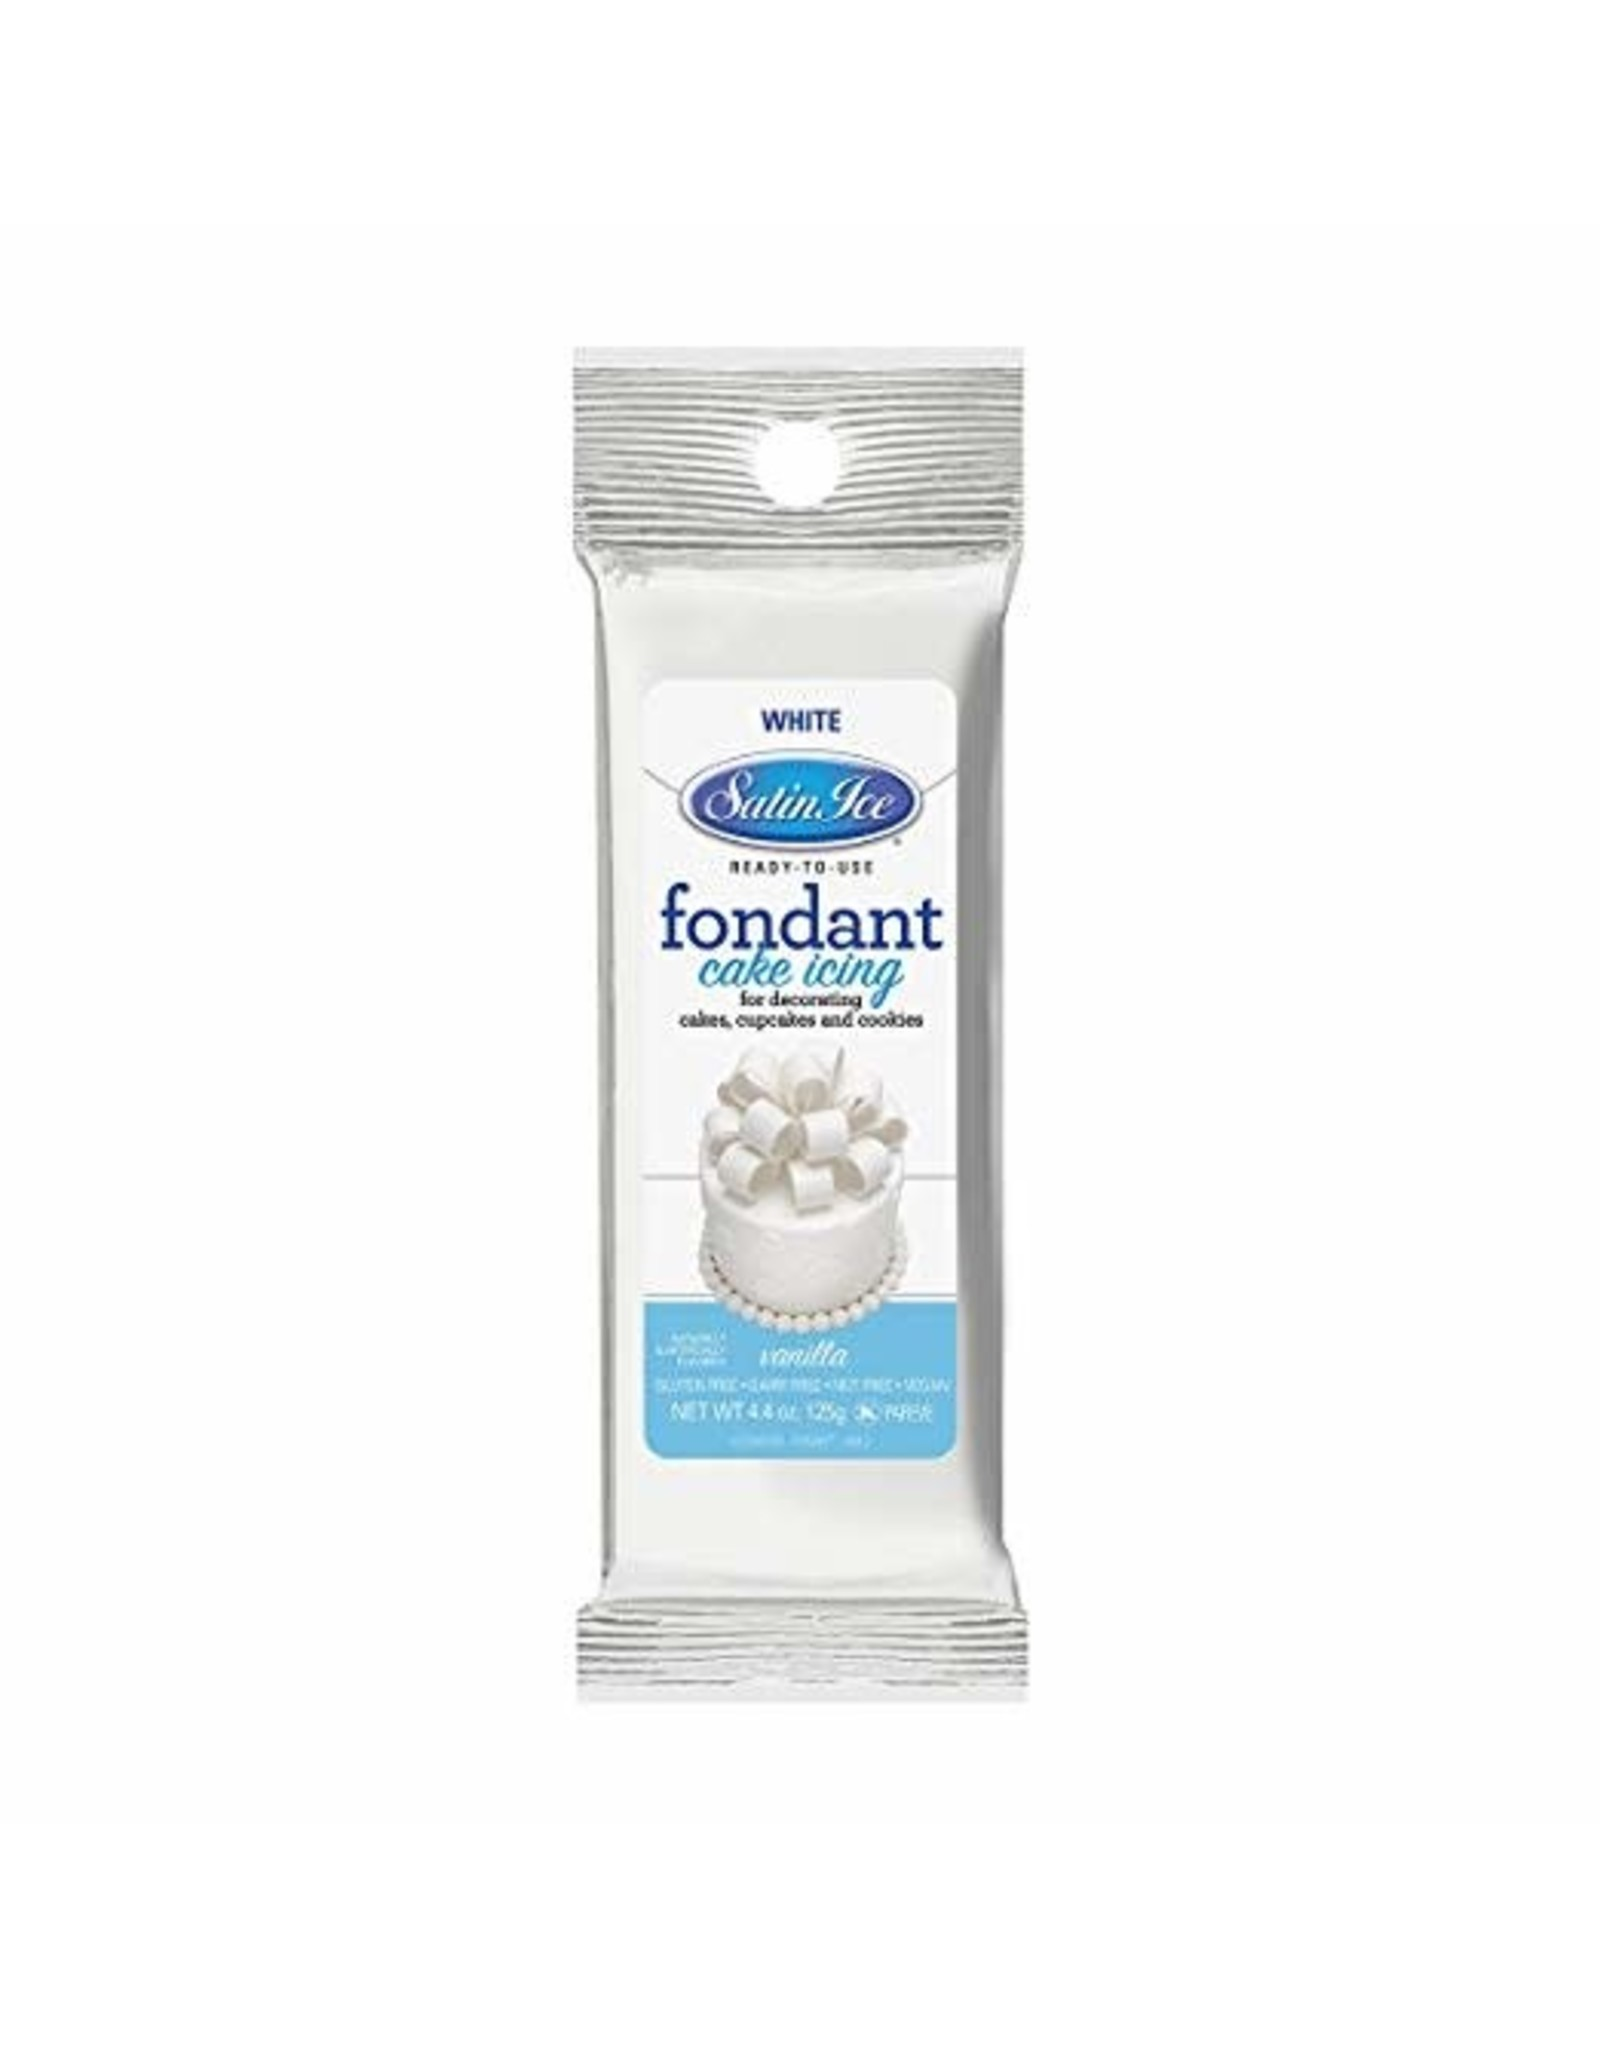 Satin Ice 4.04oz White Fondant